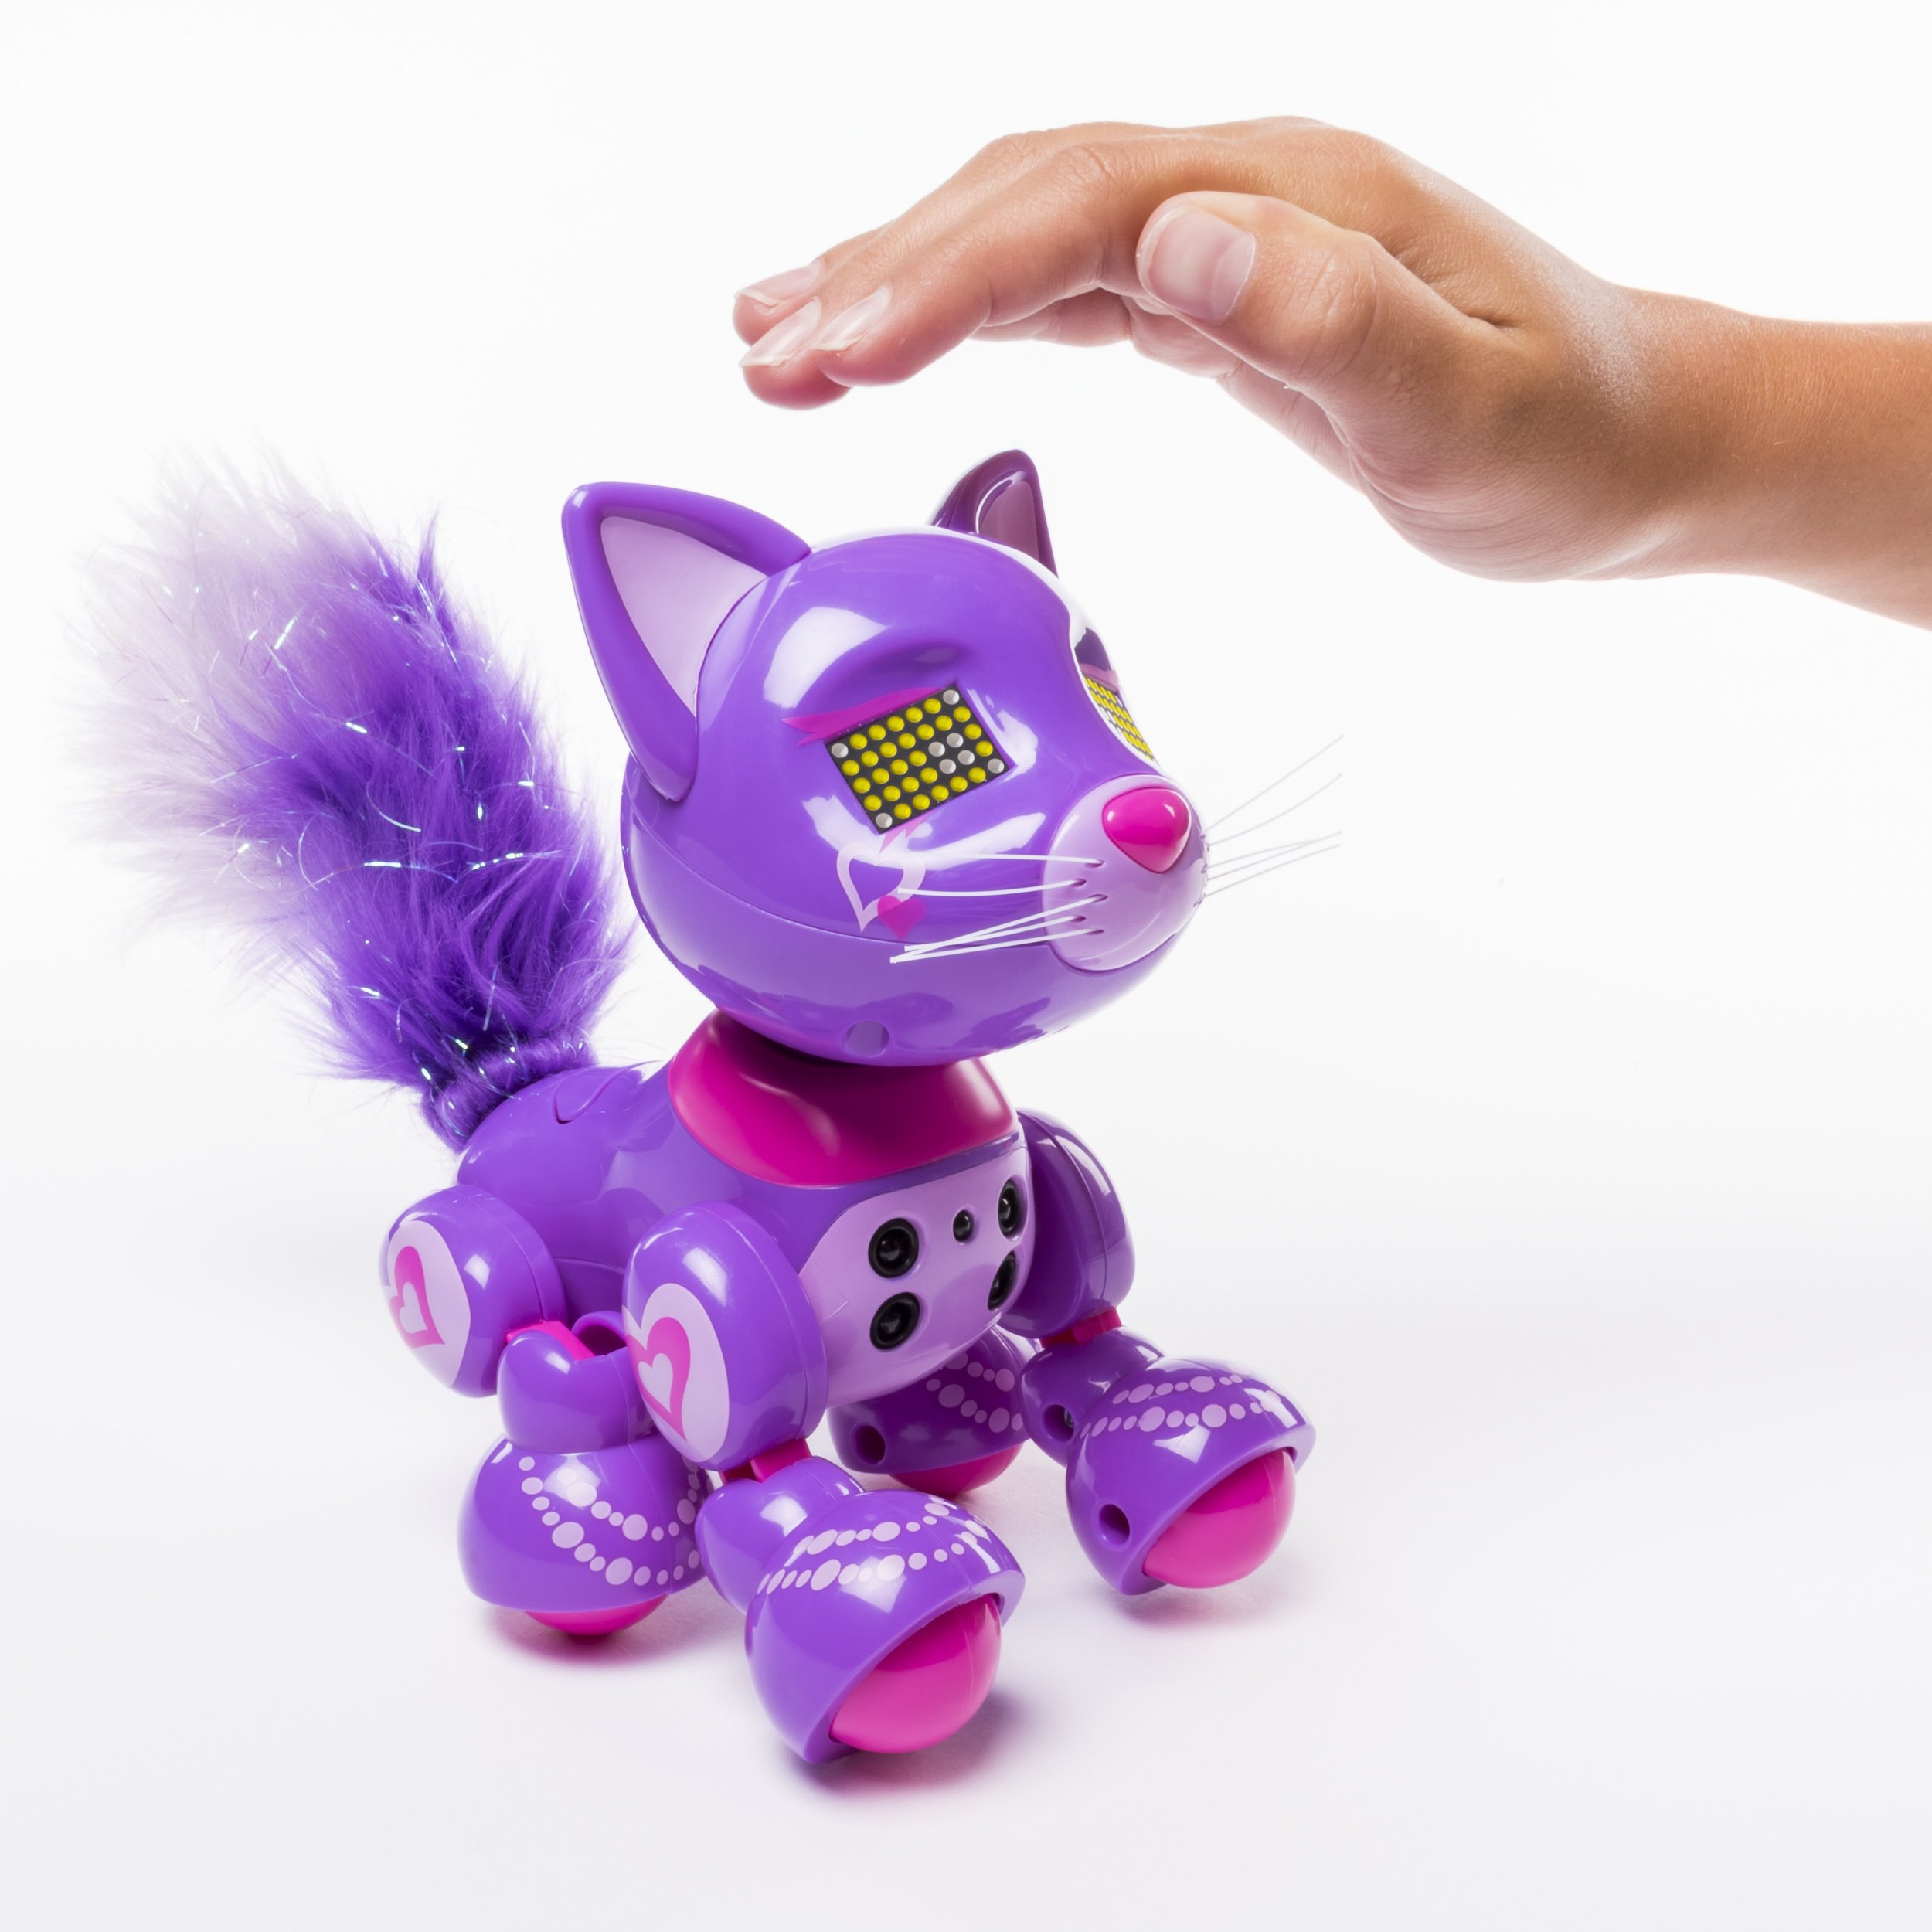 Zoomer Meowzies, Posh, Interactive Kitten with Lights, Sounds and Sensors by Zoomer (Image #6)